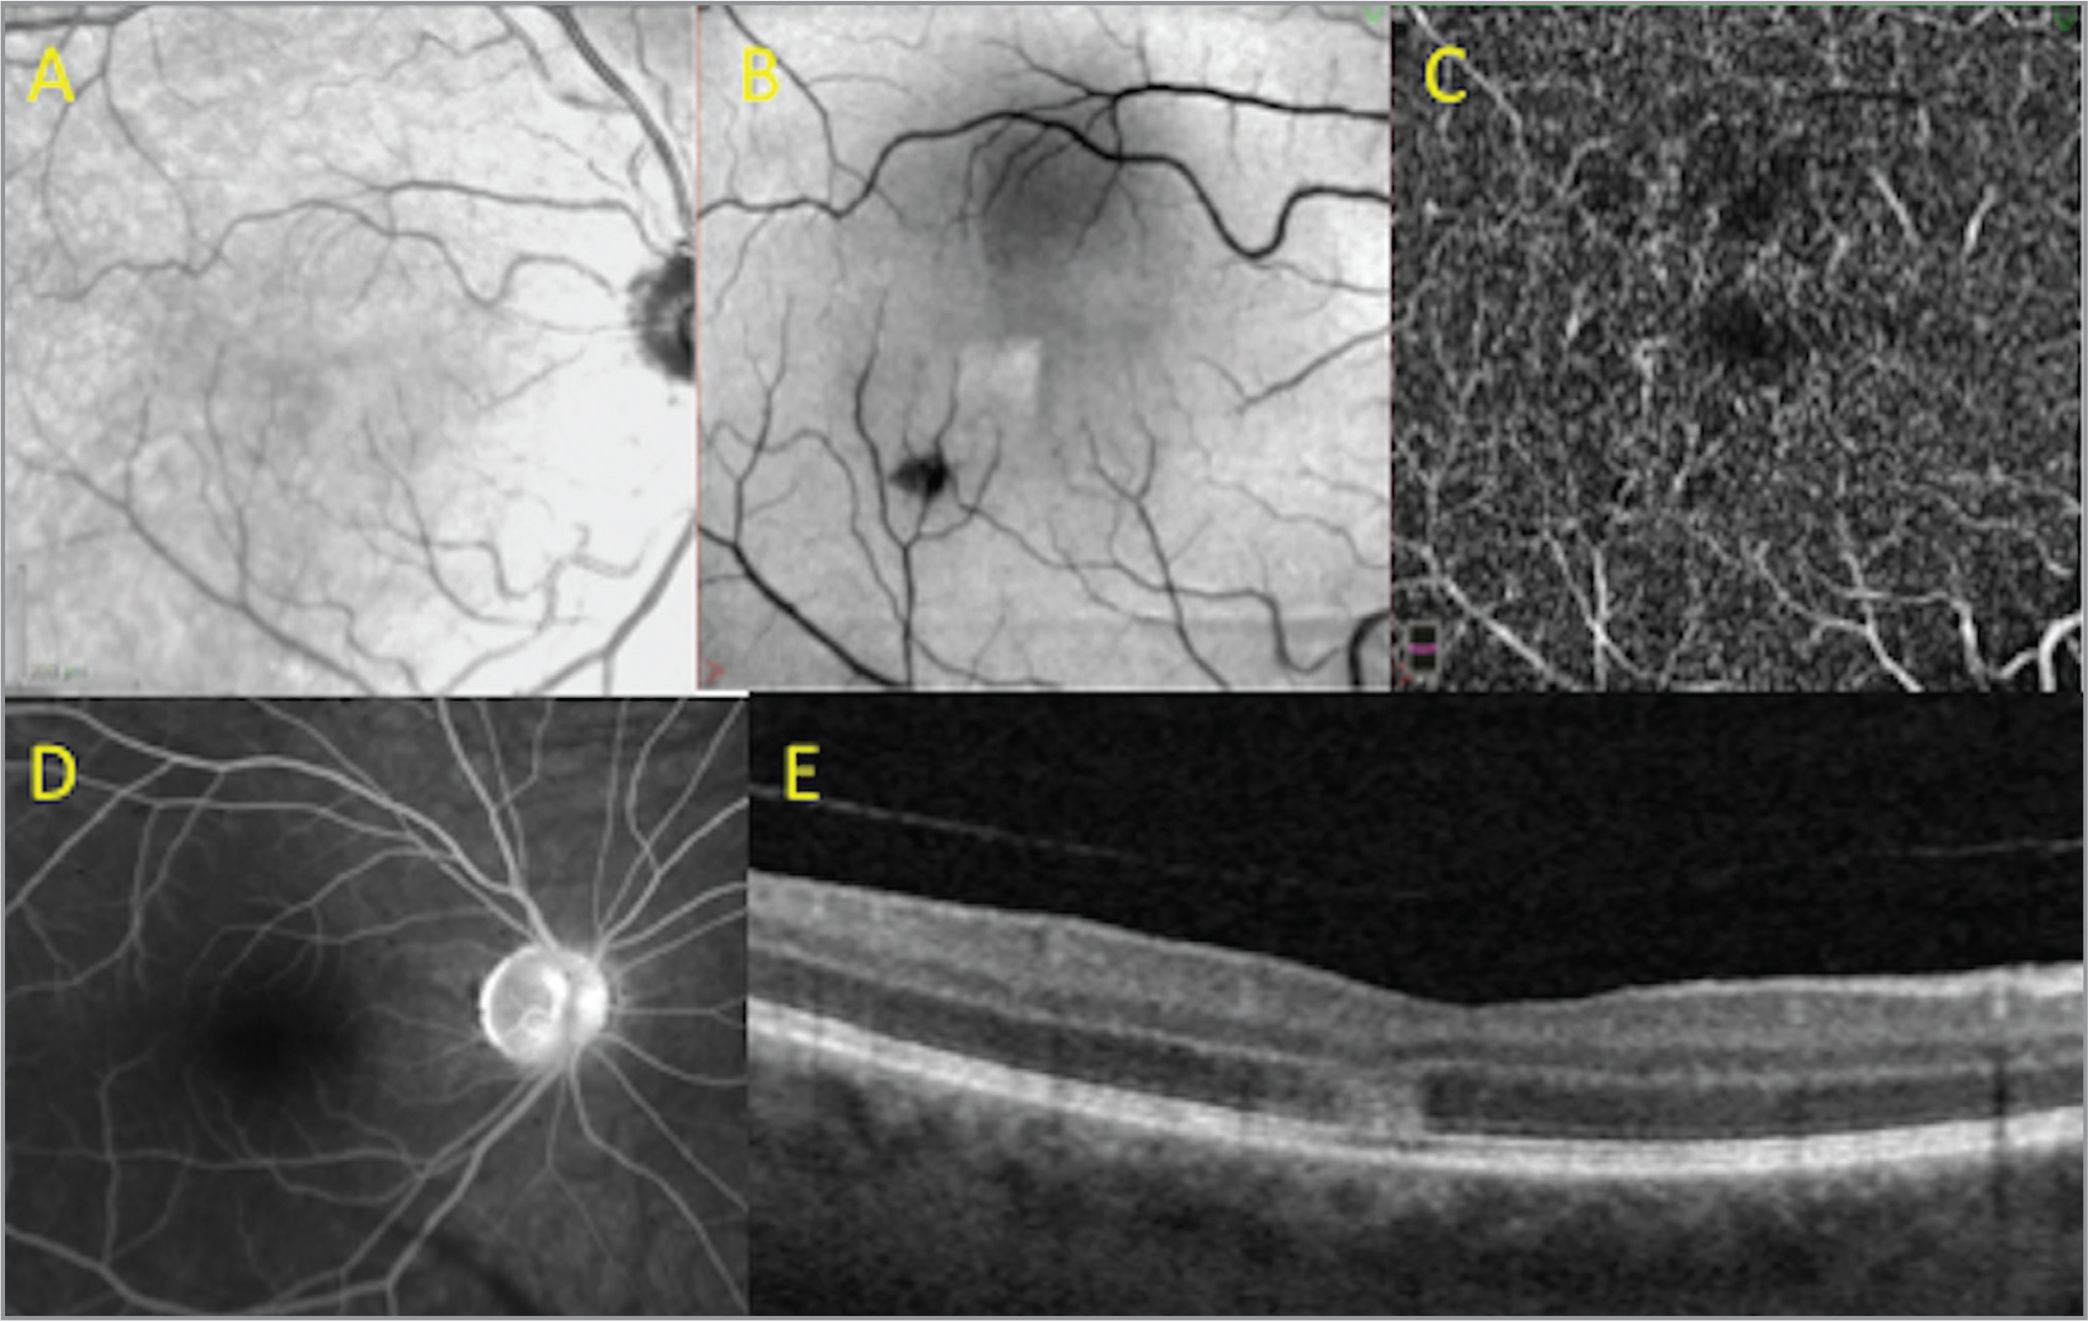 Right eye of patient 3 at presentation. Near infrared reflectance imaging showed a very subtle hyperreflective area inferonasal to the fovea (A). En face optical coherence tomography (OCT), 6 mm × 6 mm, segmented at the level of the outer retina showed a corresponding hyperreflective lesion with the apex pointing toward the central fovea and a hyporeflective, smaller, round lesion that represented the masking effect of a cotton-wool spot (B). OCT angiography, 3 mm × 3 mm, at the level of the deep capillary plexus, revealed a subtle area of hypoperfusion inferotemporally (C). Fundus fluorescein angiography was unremarkable (D). OCT B-scan revealed a small area of thickening and hyperreflectivity of the outer plexiform layer, outer nuclear layer, and ellipsoid zone (E).